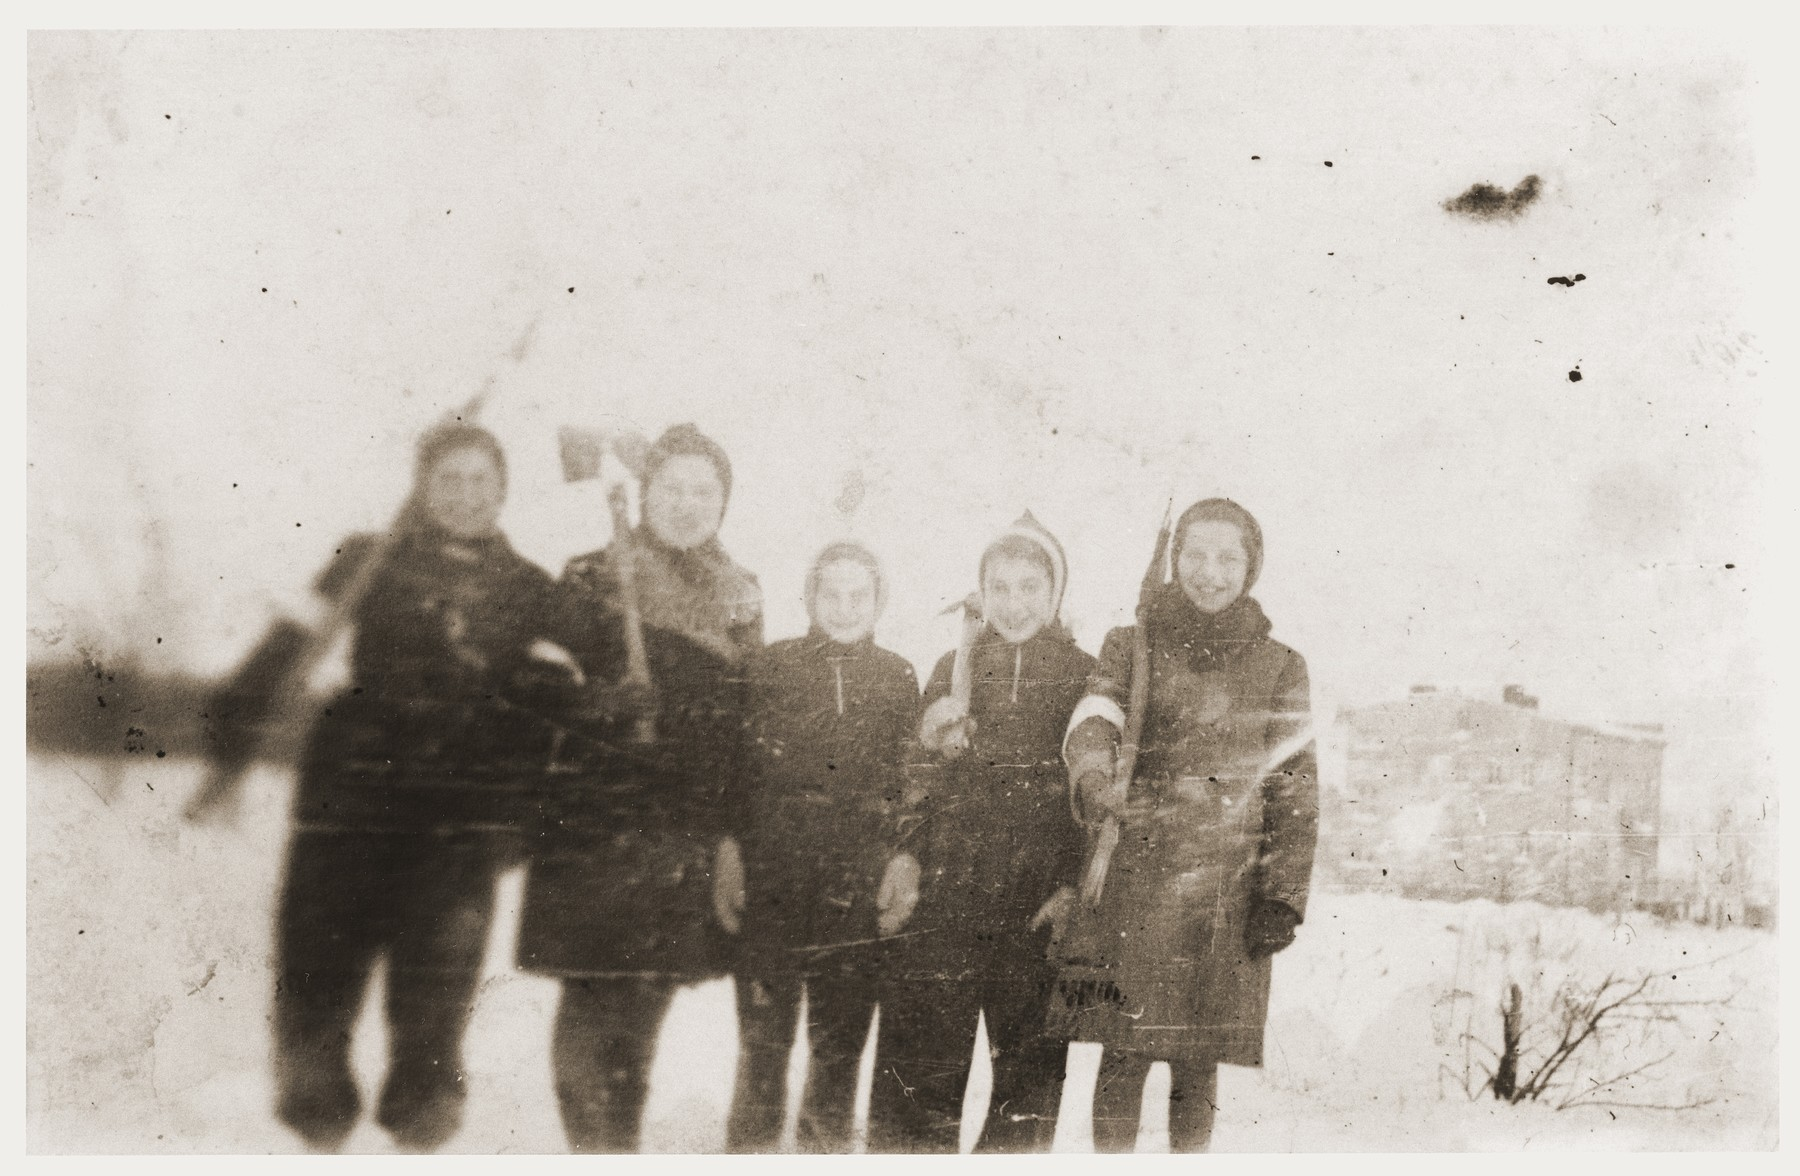 A group of Jewish girls, wearing armbands, poses with axes in a snow covered field in the Zabno ghetto.    Among those pictured are Hania Goldman (far right) and her sister, Rachela (second from the left).